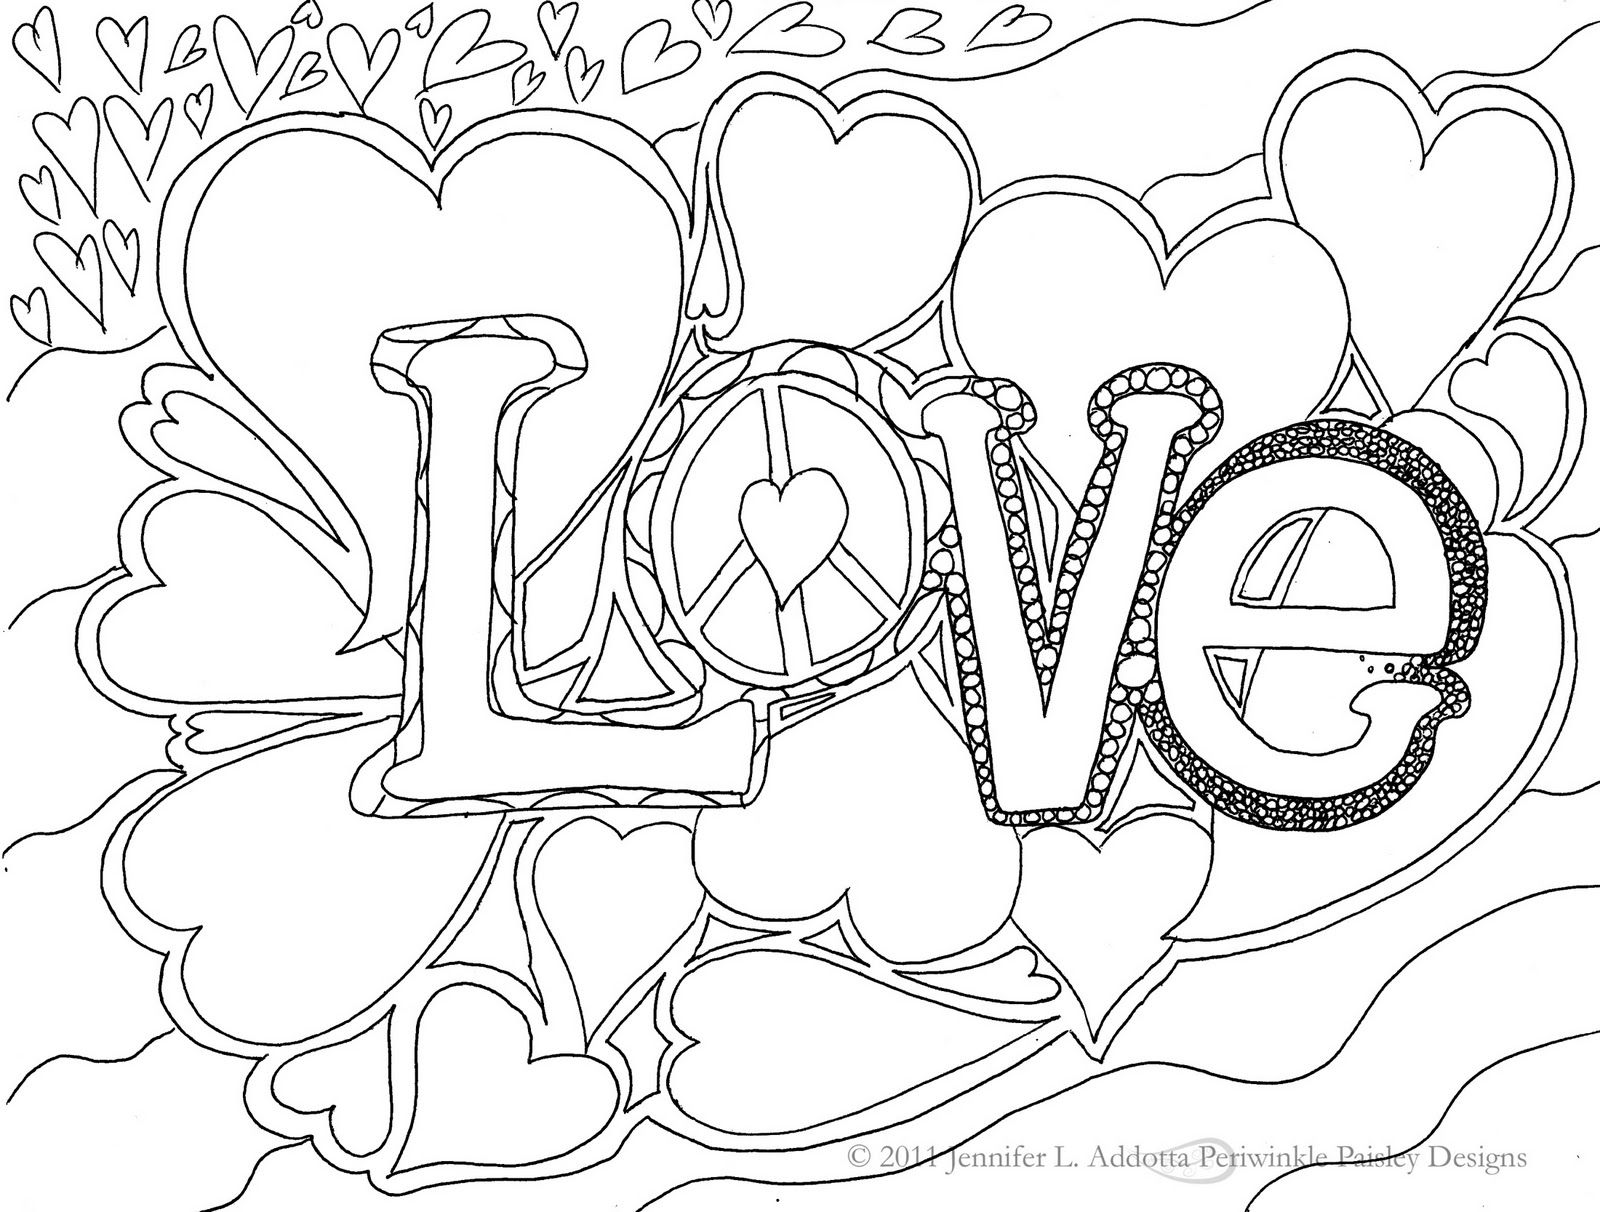 Love you coloring pages coloring page be my valentine coloring - Love Coloring Pages For Adults Free Coloring Page For You Or